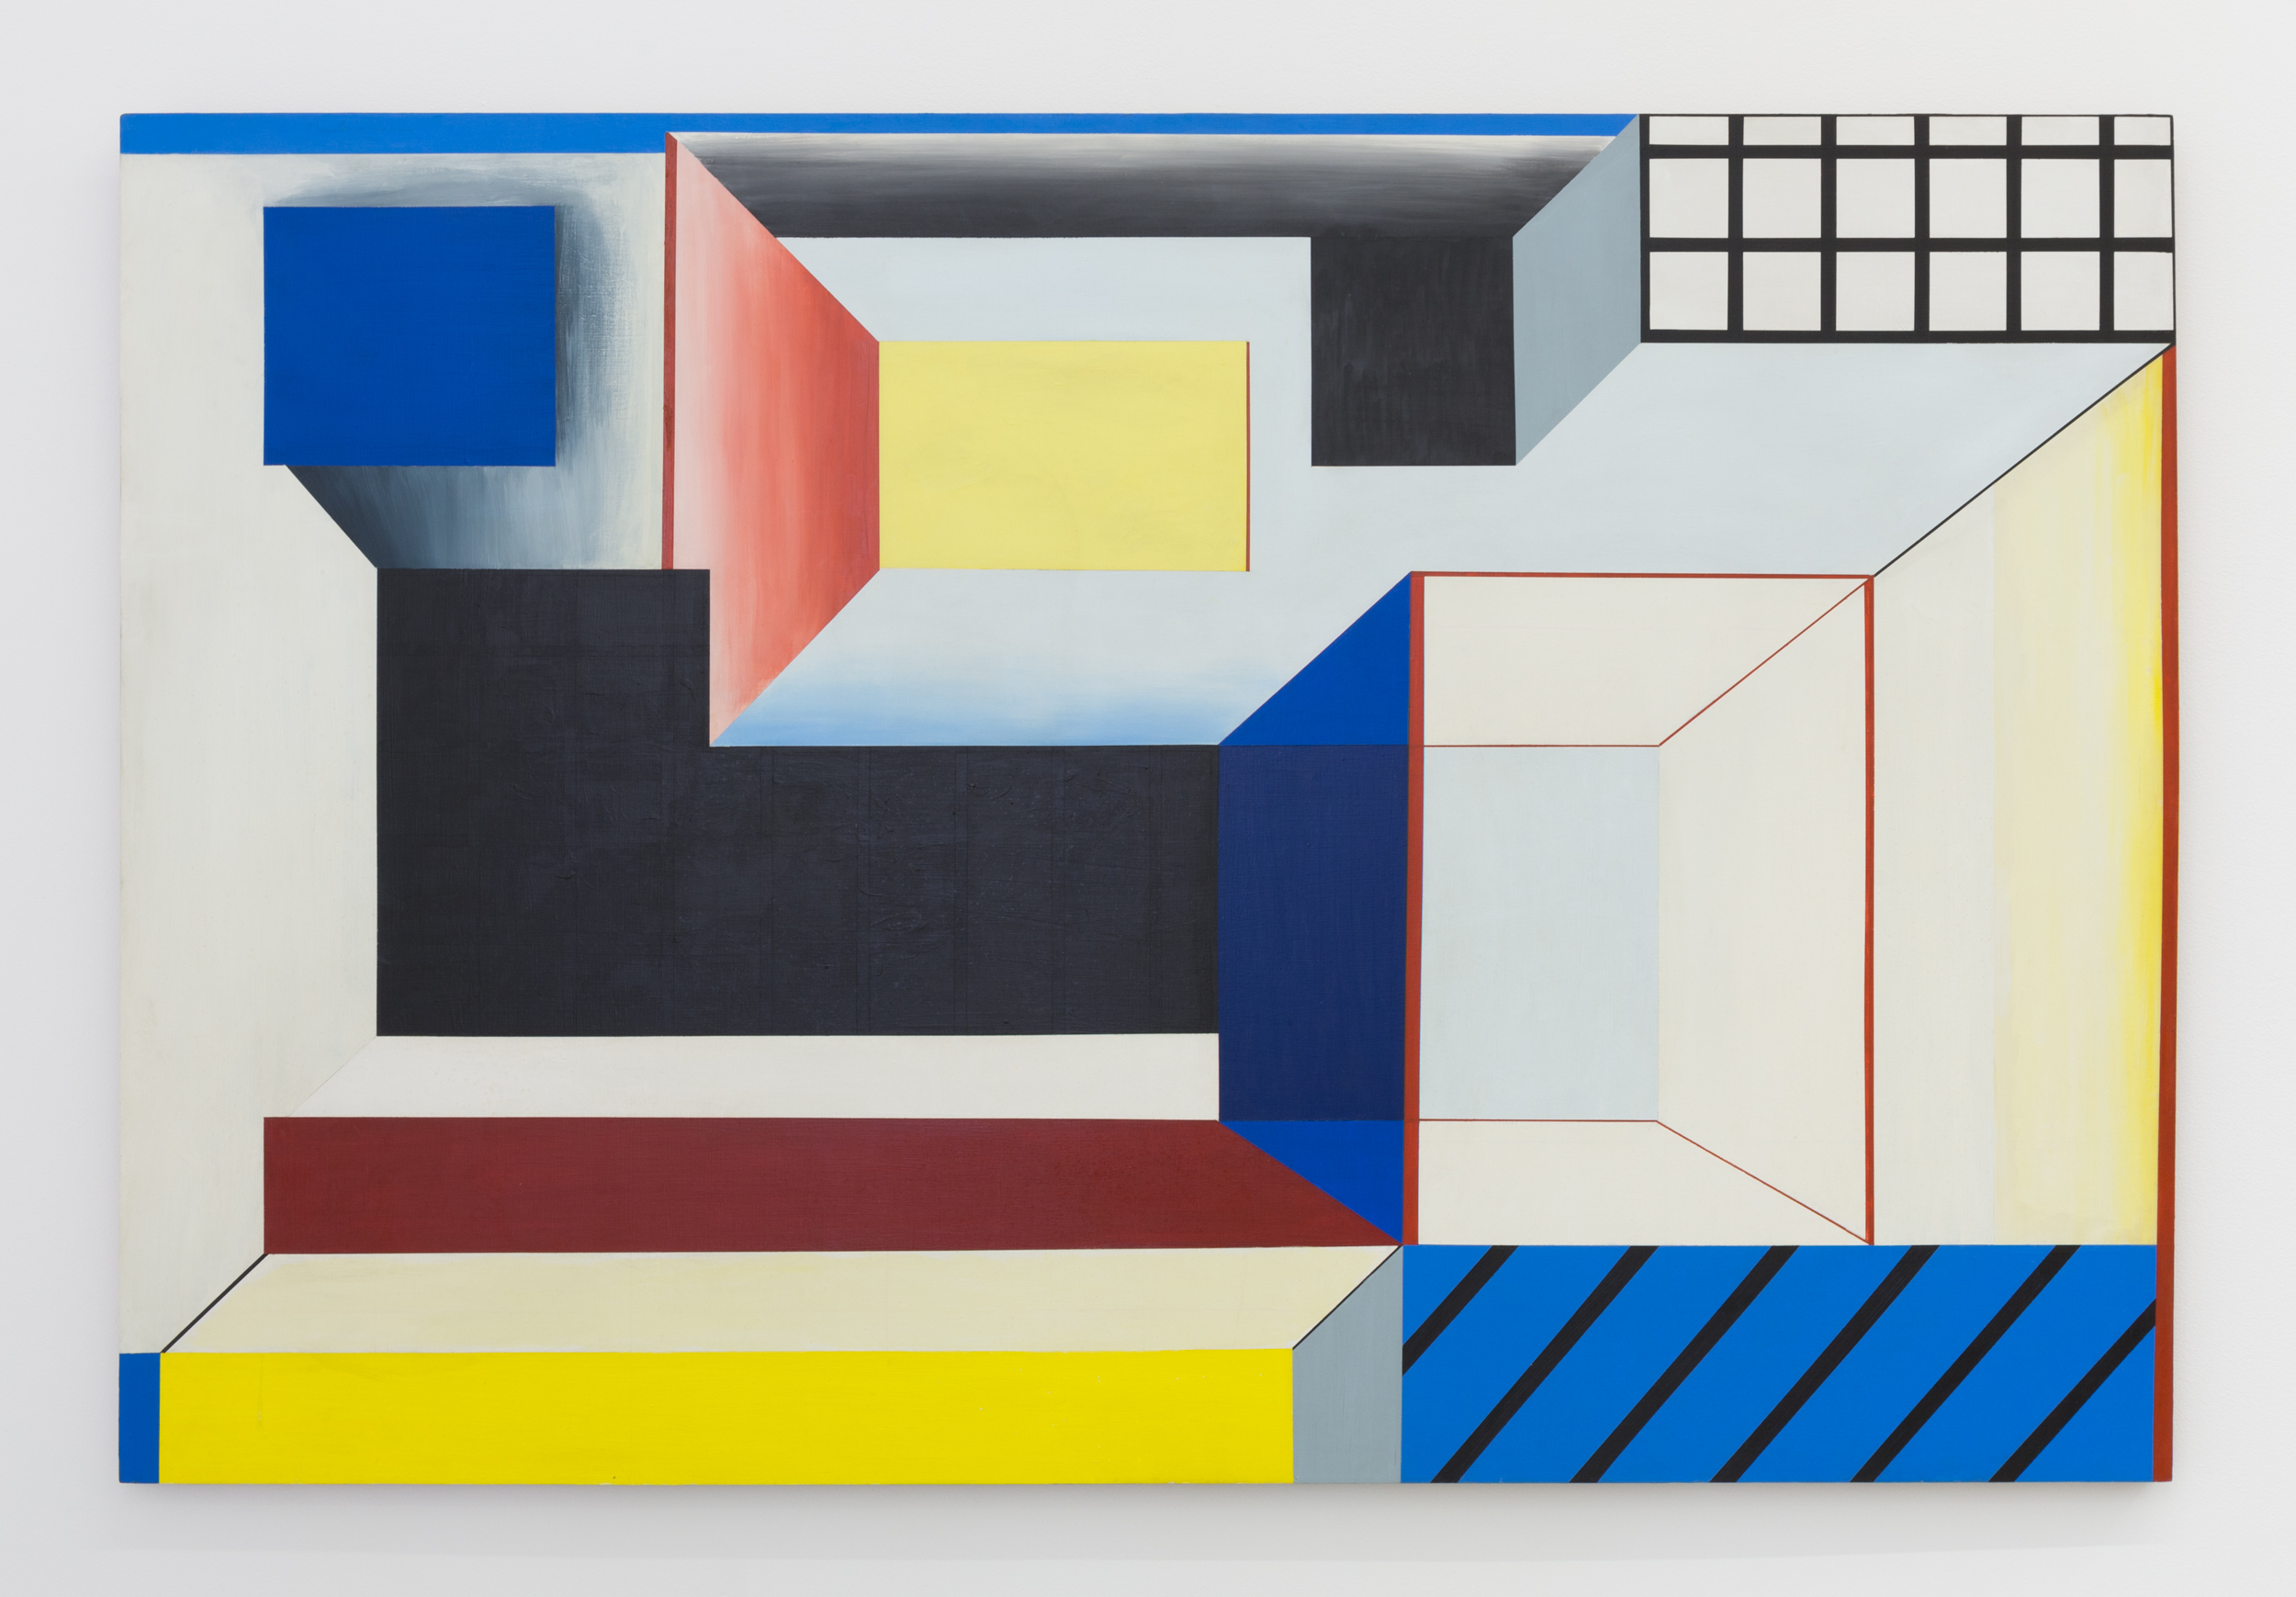 SUZANNE BLANK REDSTONE,  Portal 1,  1967. Acrylic on shaped masonite, 44.5 x 66 inches